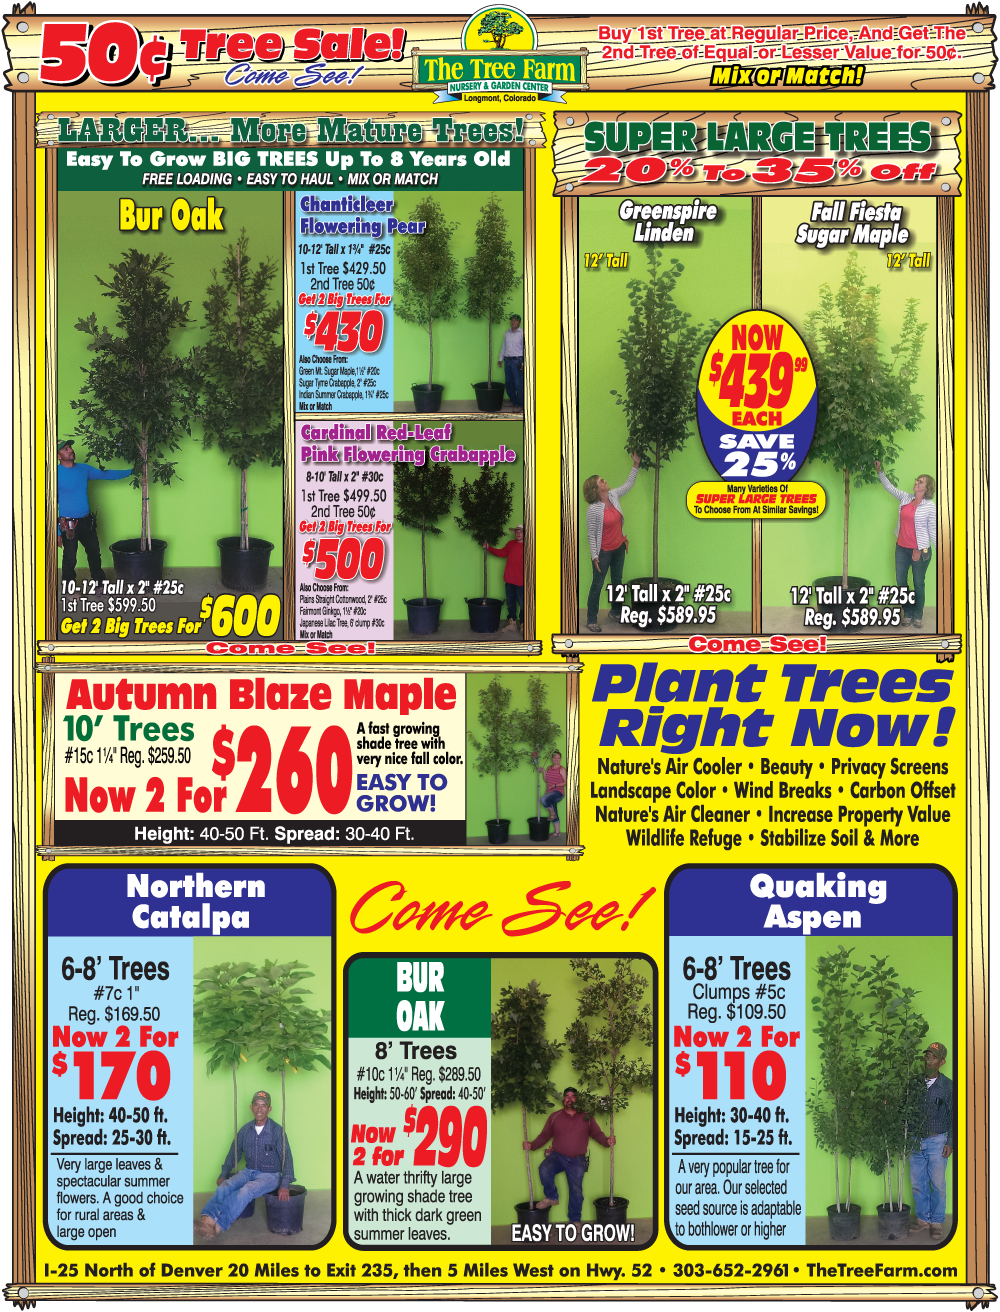 50¢ TREE SALE...GOING ON NOW!